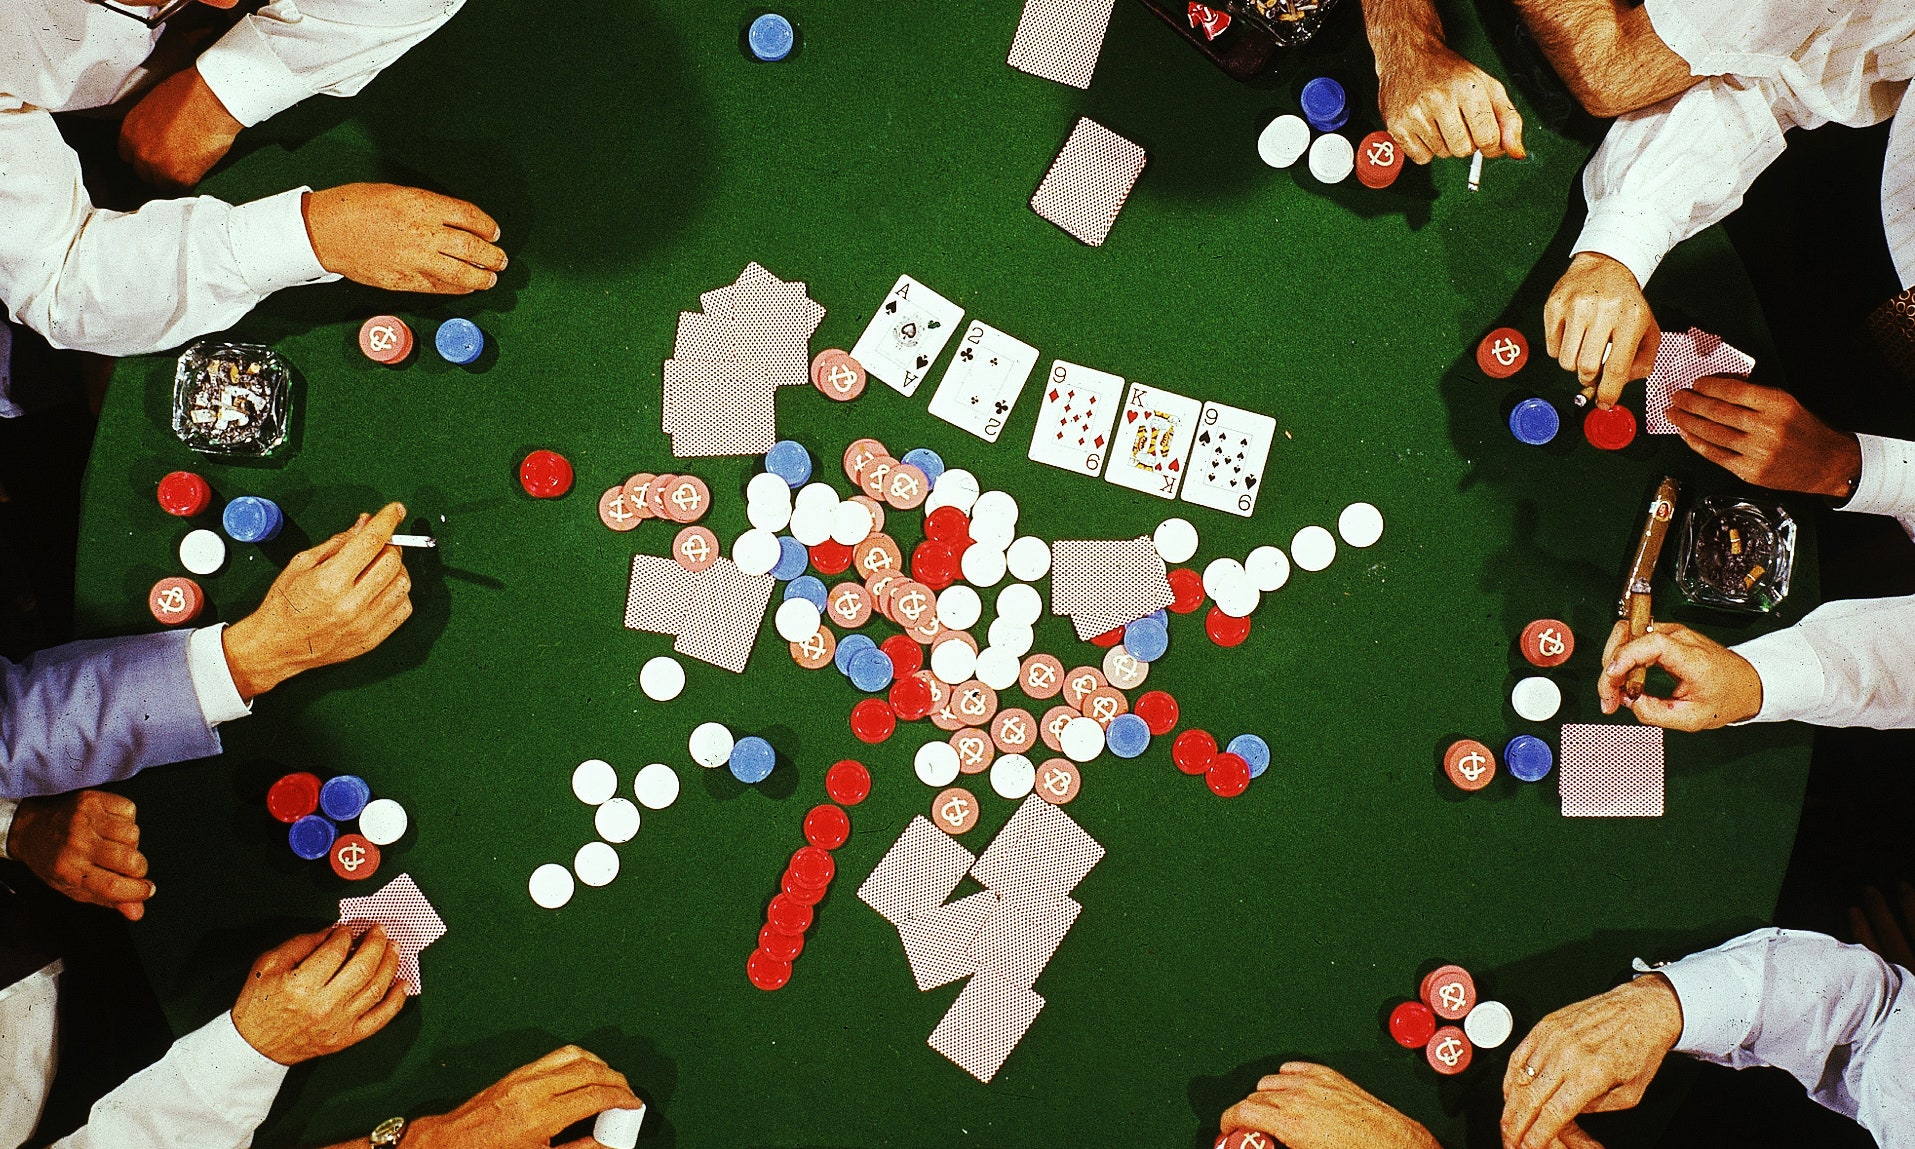 Use An Online Poker Bot To Extend Your Cash - Gambling